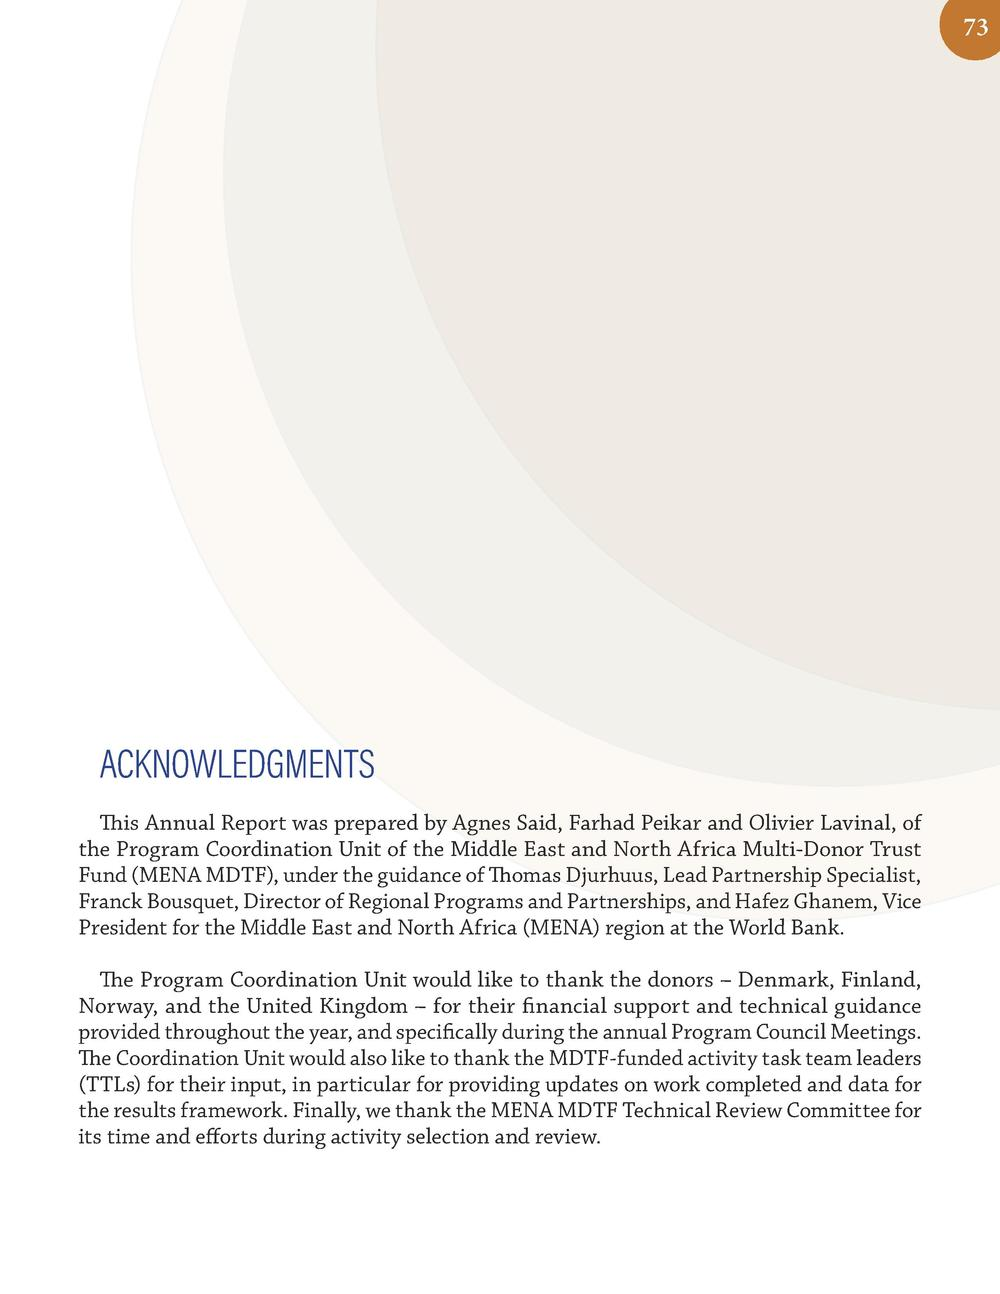 73  ACKNOWLEDGMENTS This Annual Report was prepared by Agnes Said, Farhad Peikar and Olivier Lavinal, of the Program Coord...